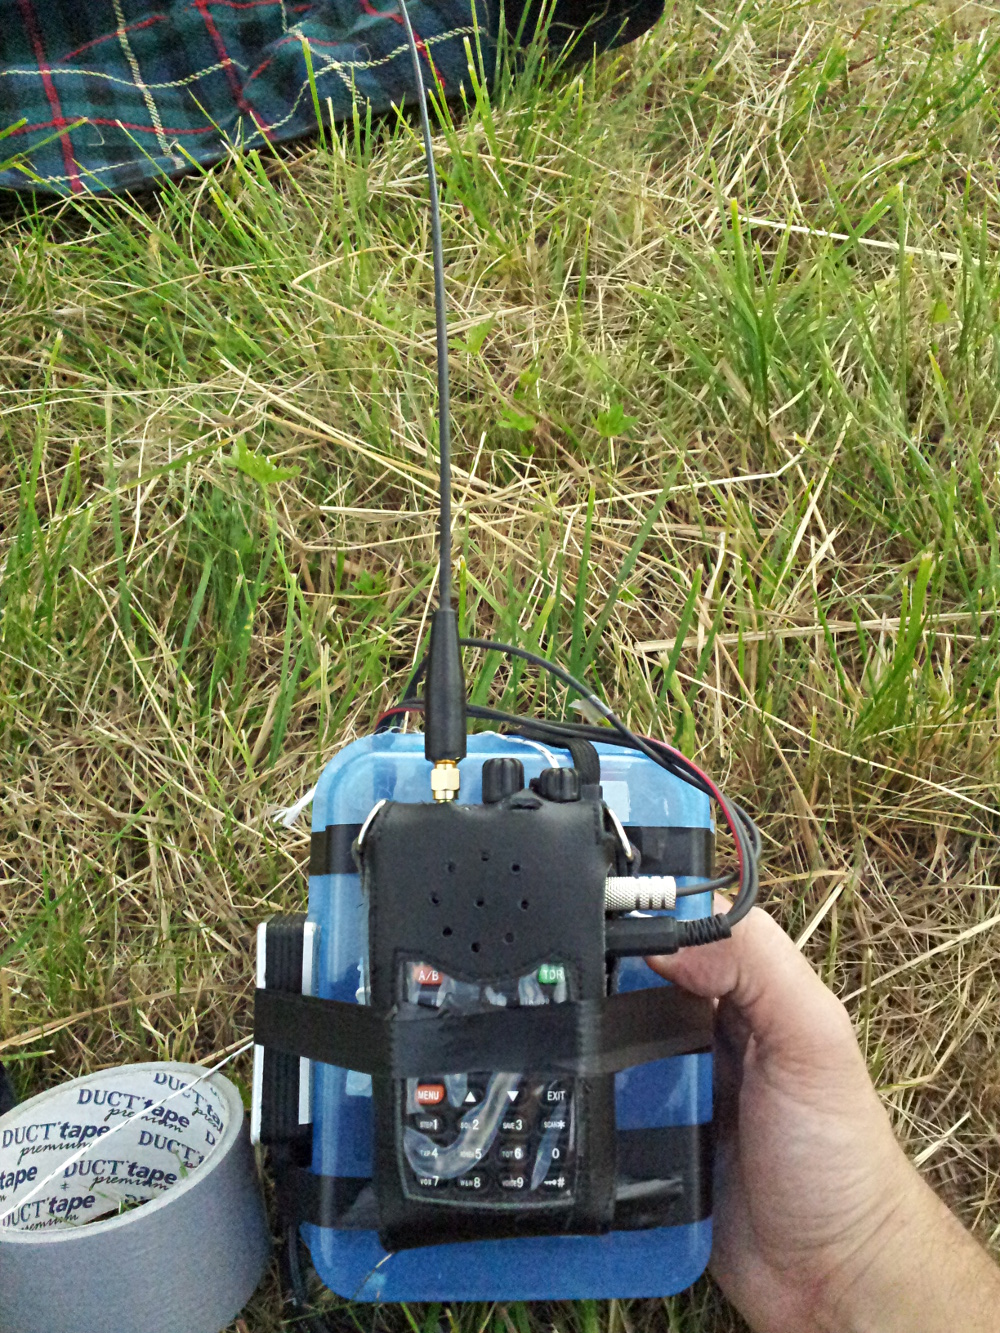 LARR - Low Altitude Radio Relay